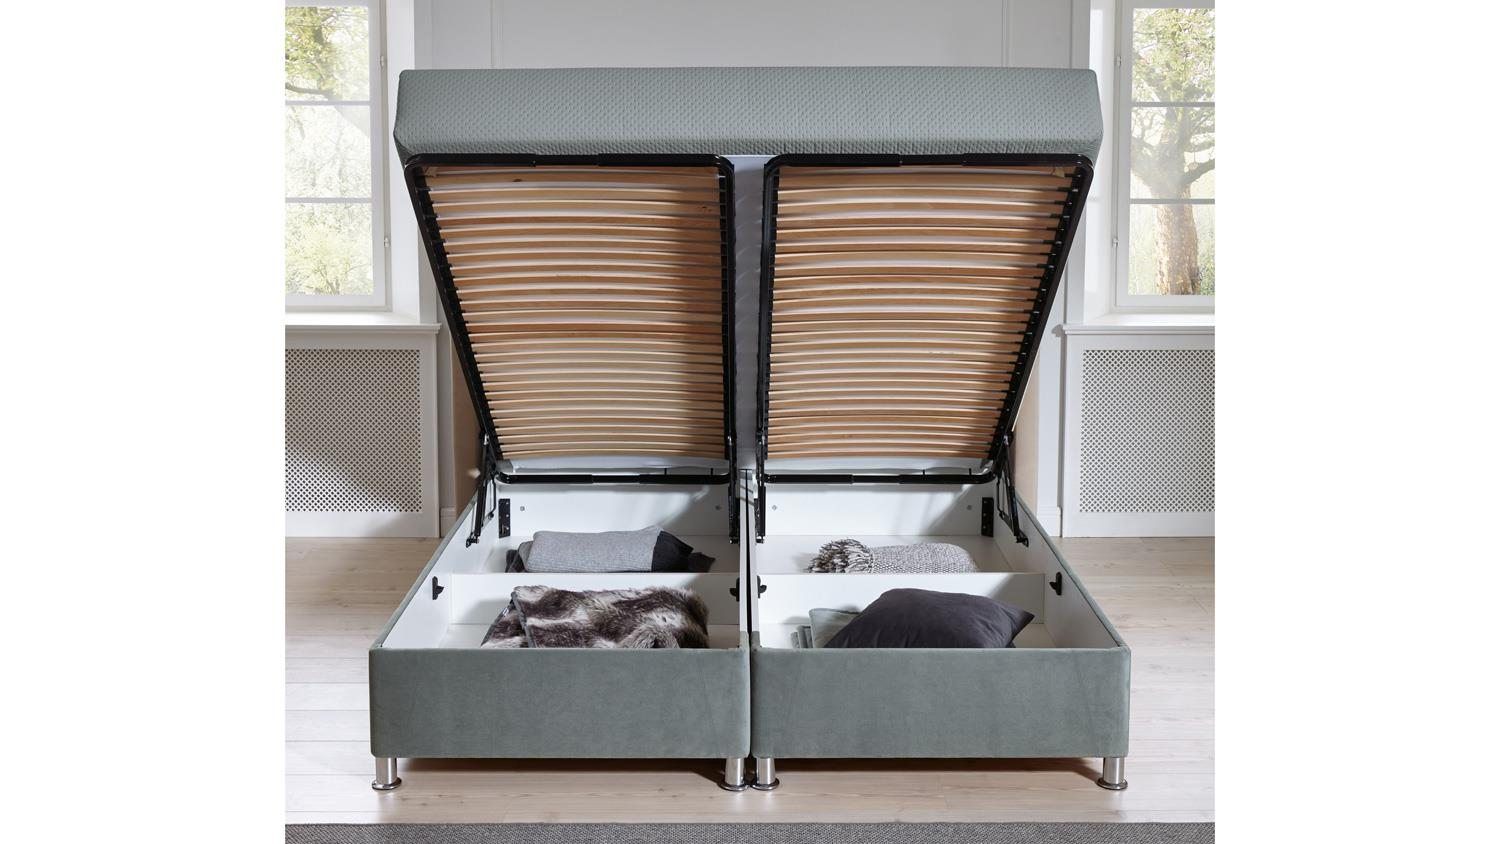 box komfortbett diamond polsterbett stoff grau bettkasten 180x200 cm. Black Bedroom Furniture Sets. Home Design Ideas